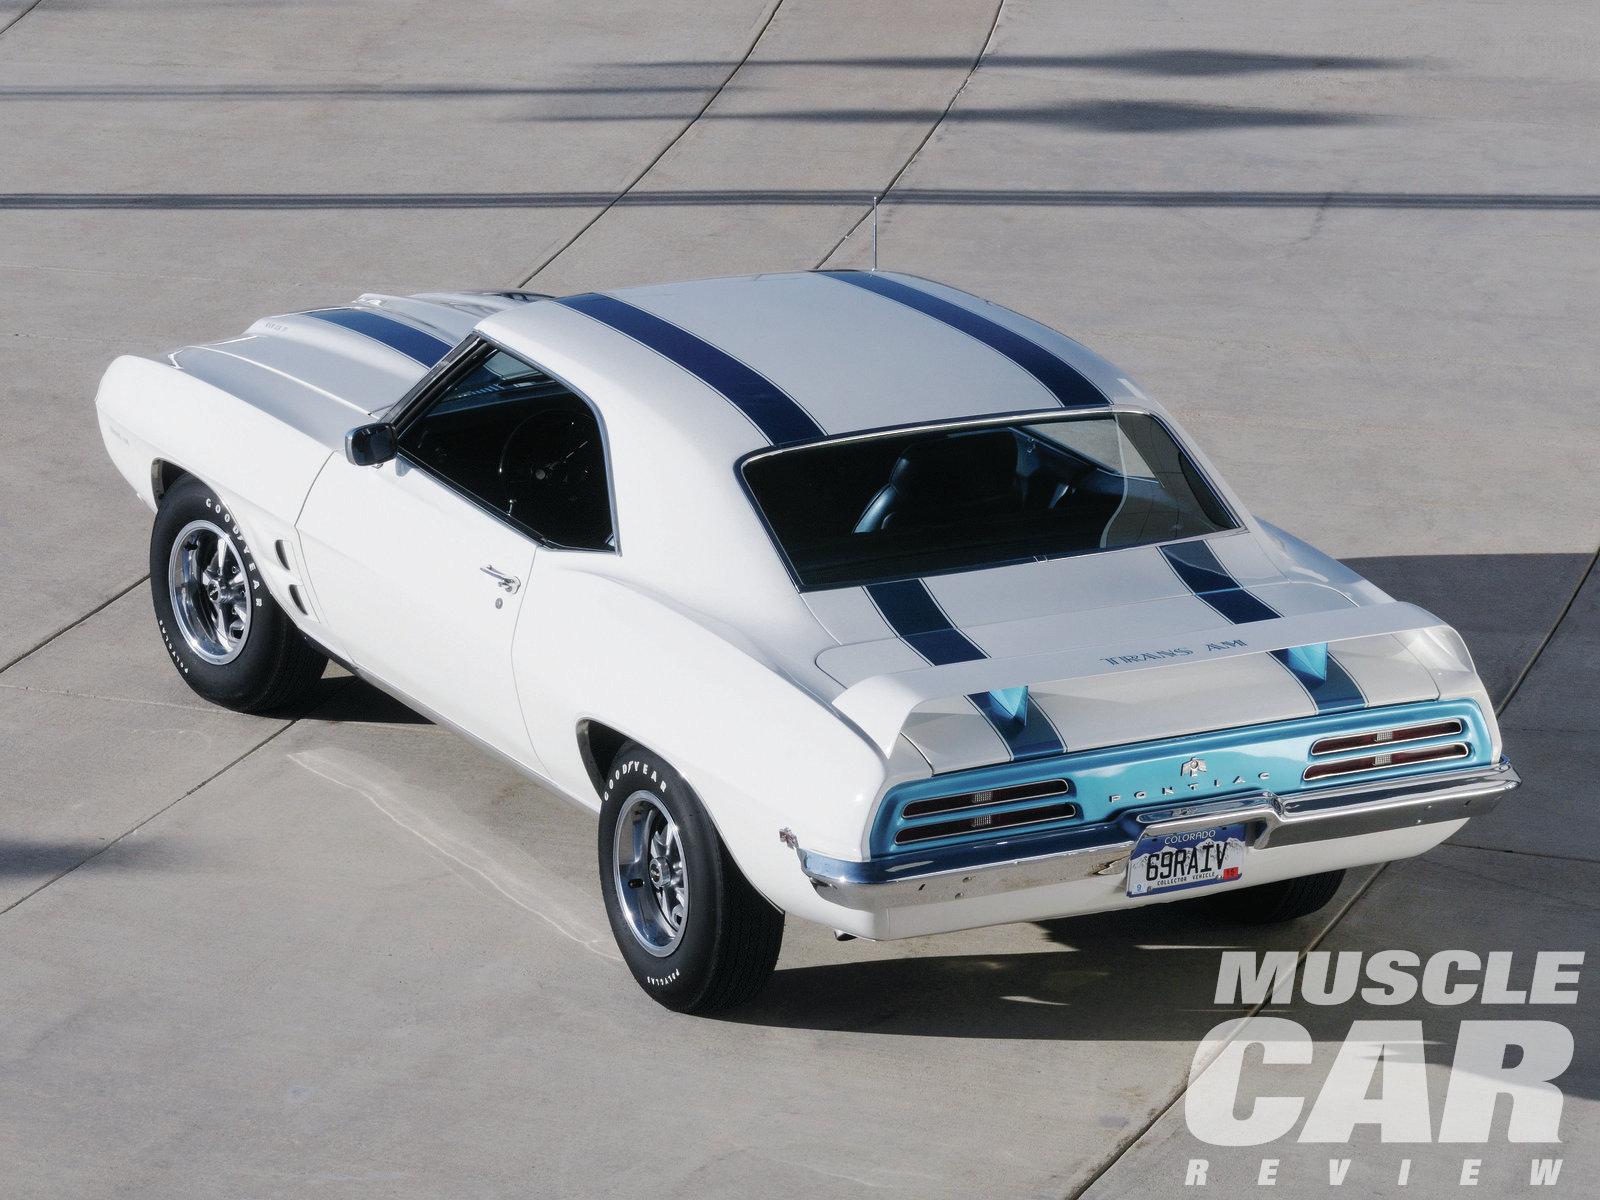 The Brits had their green, the Italians red, the Germans silver. The traditional color scheme for U.S. racing teams consisted of blue stripes over white paint, which is why Pontiac chose it for its new Trans Am. Pontiac's stylists wanted the car to look racecar purposeful, not necessarily muscle car trendy.